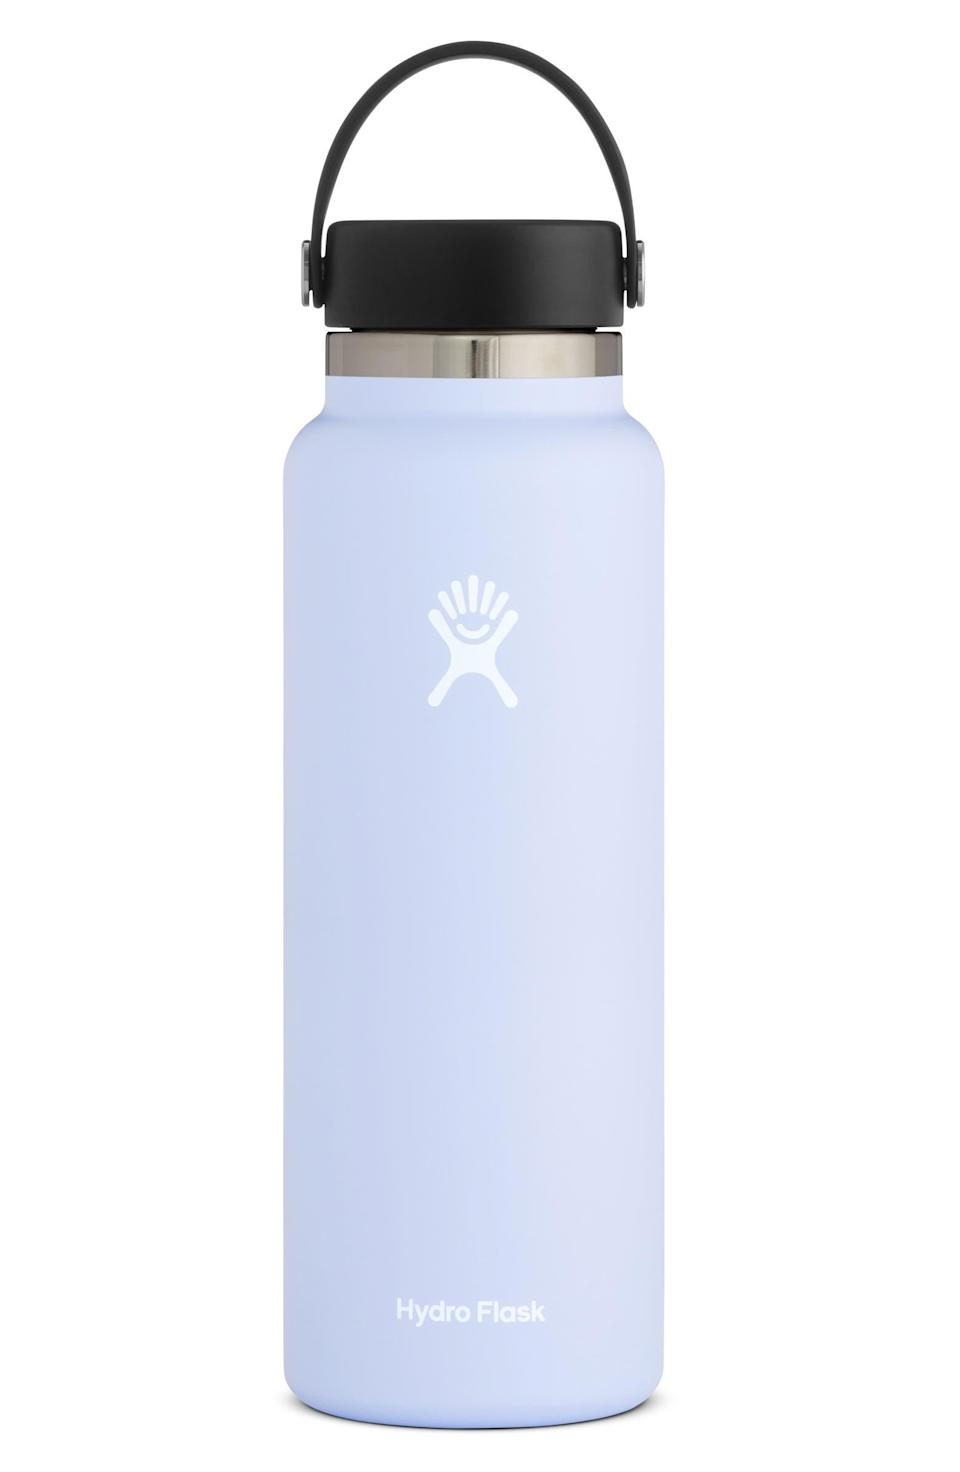 """<h2>Hydro Flask 40-Ounce Wide Mouth Cap Bottle 26% Off</h2><br><br><em>Shop <strong><a href=""""https://www.nordstrom.com/brands/hydro-flask--14701"""" rel=""""nofollow noopener"""" target=""""_blank"""" data-ylk=""""slk:Hydro Flask"""" class=""""link rapid-noclick-resp"""">Hydro Flask</a></strong></em><br><br><strong>Hydro Flask</strong> 40-Ounce Wide Mouth Cap Bottle, $, available at <a href=""""https://go.skimresources.com/?id=30283X879131&url=https%3A%2F%2Fwww.nordstrom.com%2Fs%2Fhydro-flask-40-ounce-wide-mouth-cap-bottle%2F4534339"""" rel=""""nofollow noopener"""" target=""""_blank"""" data-ylk=""""slk:Nordstrom"""" class=""""link rapid-noclick-resp"""">Nordstrom</a>"""